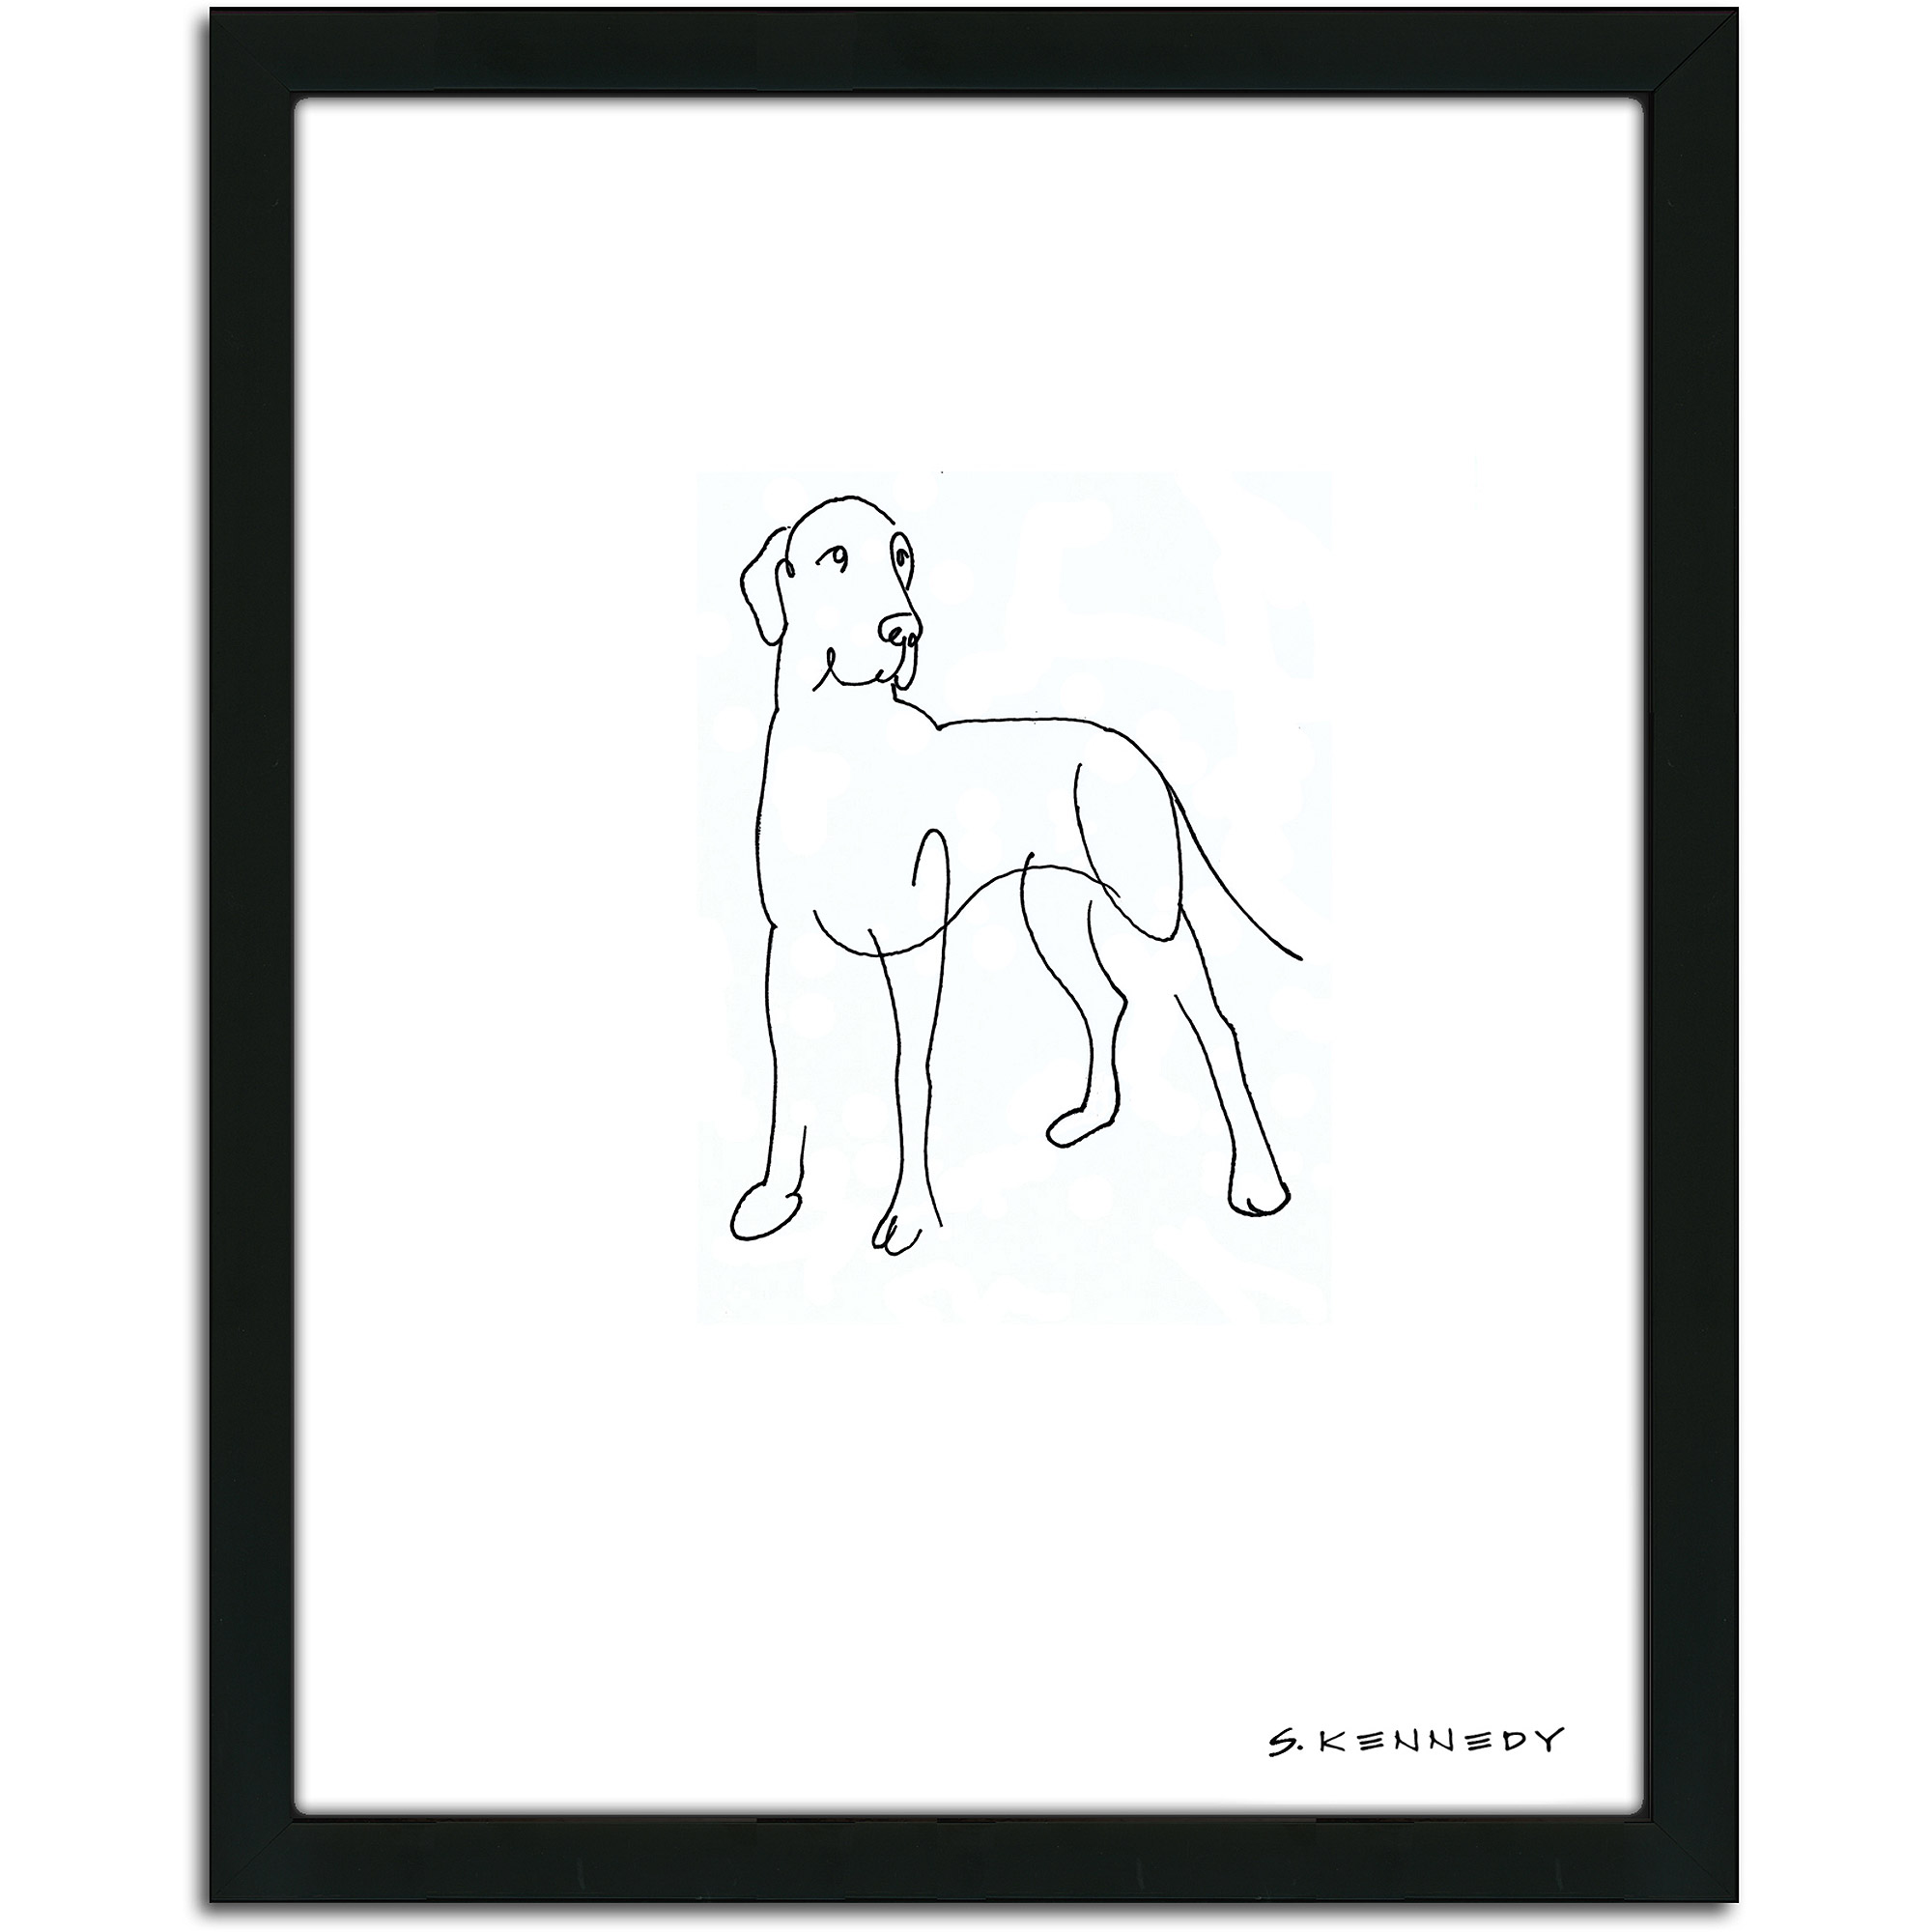 Personal-Prints Great Dane Dog Line Drawing Framed Art